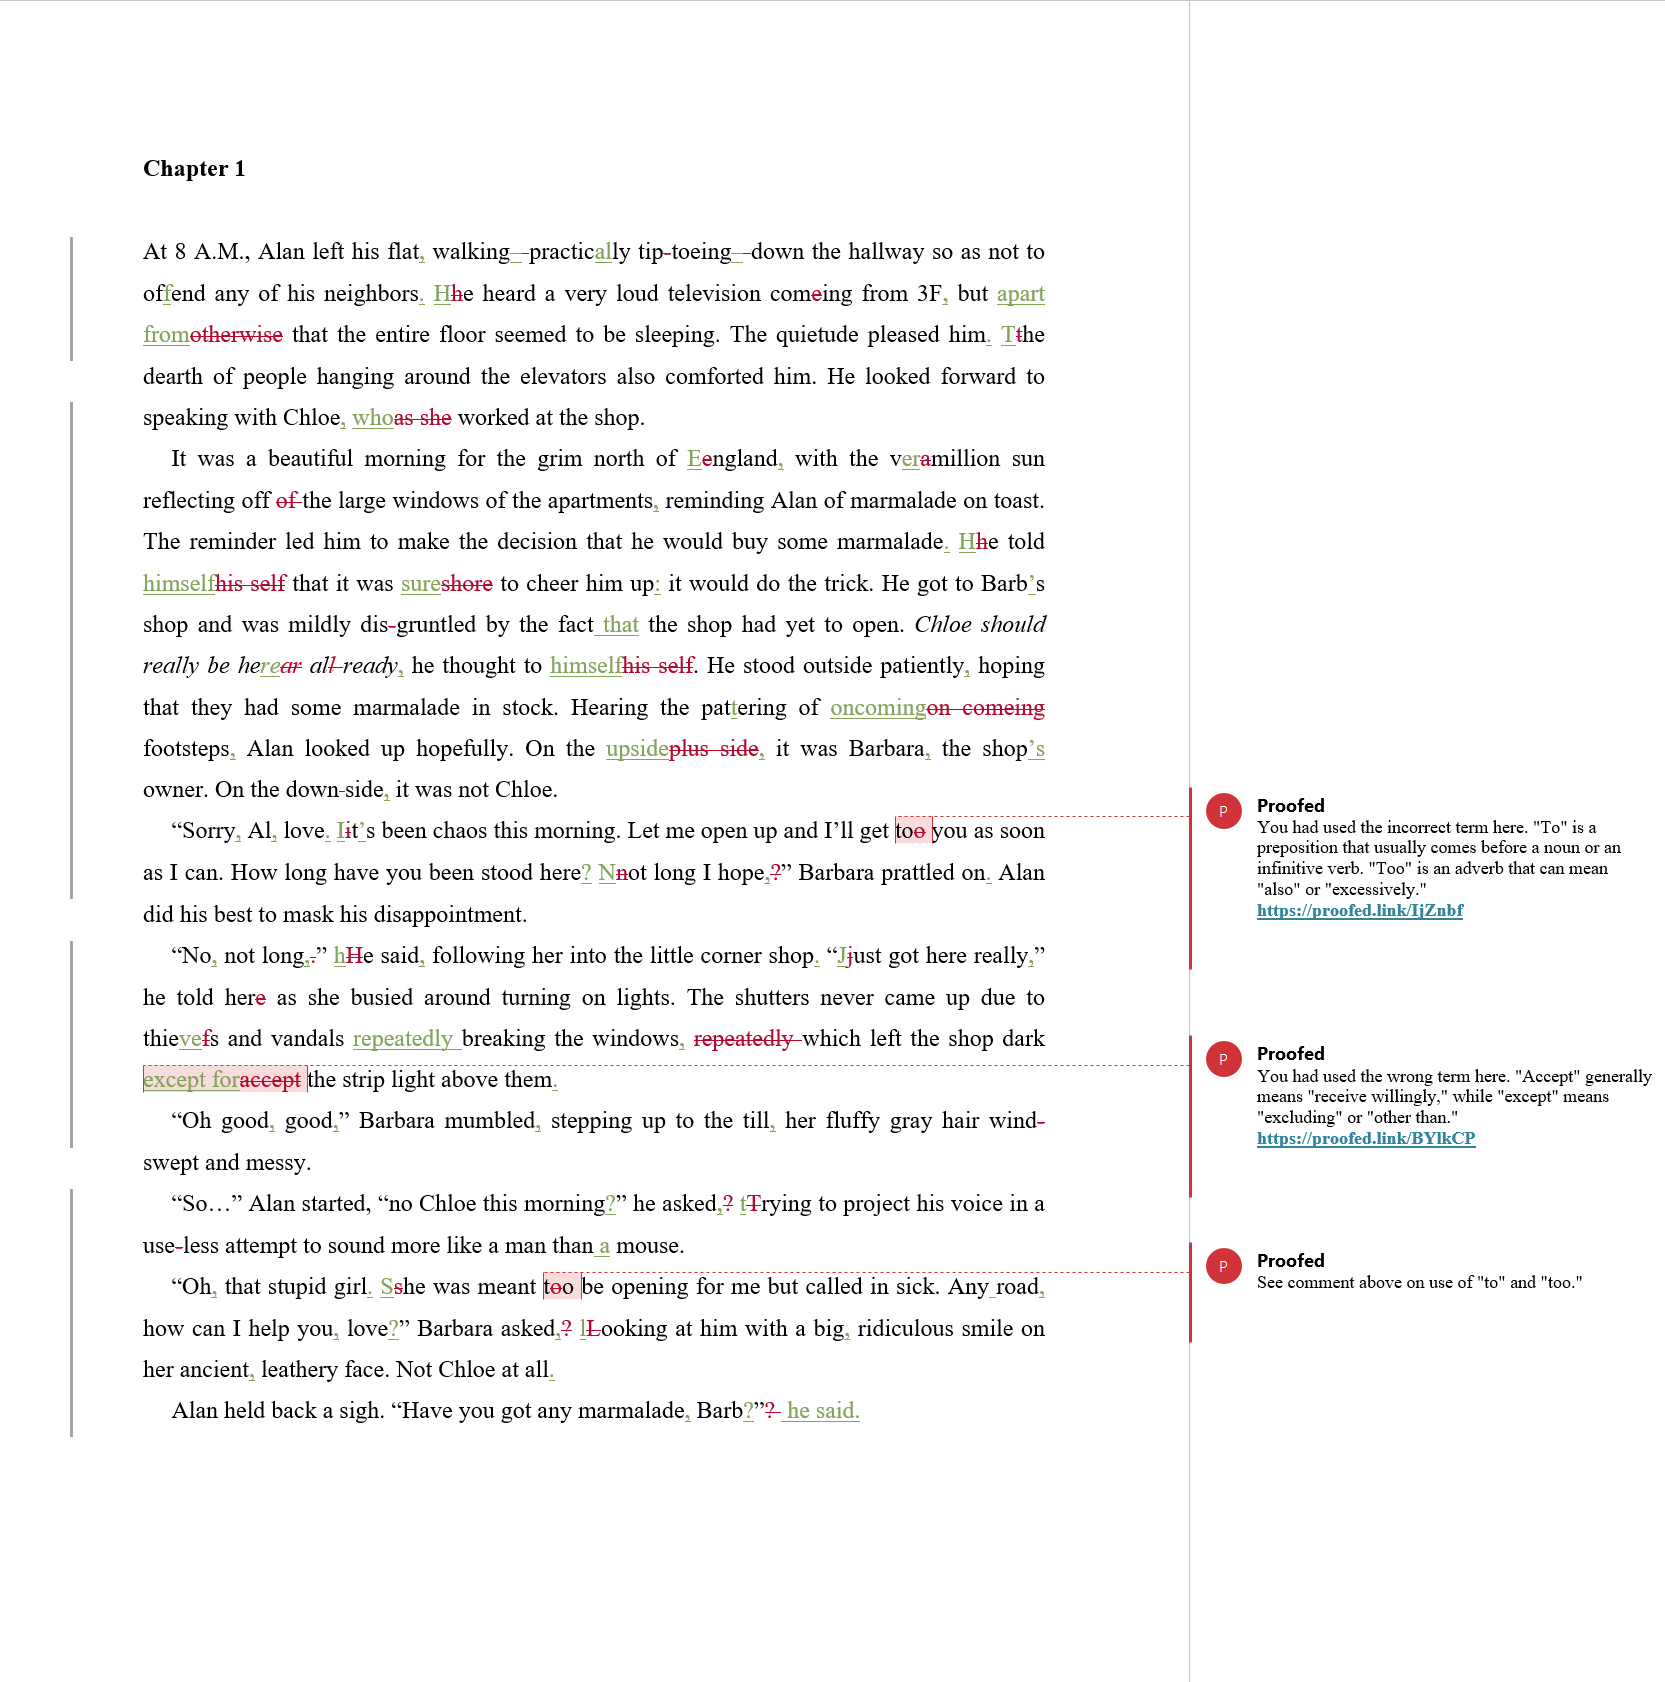 ODT Proofreading Example (After Editing)